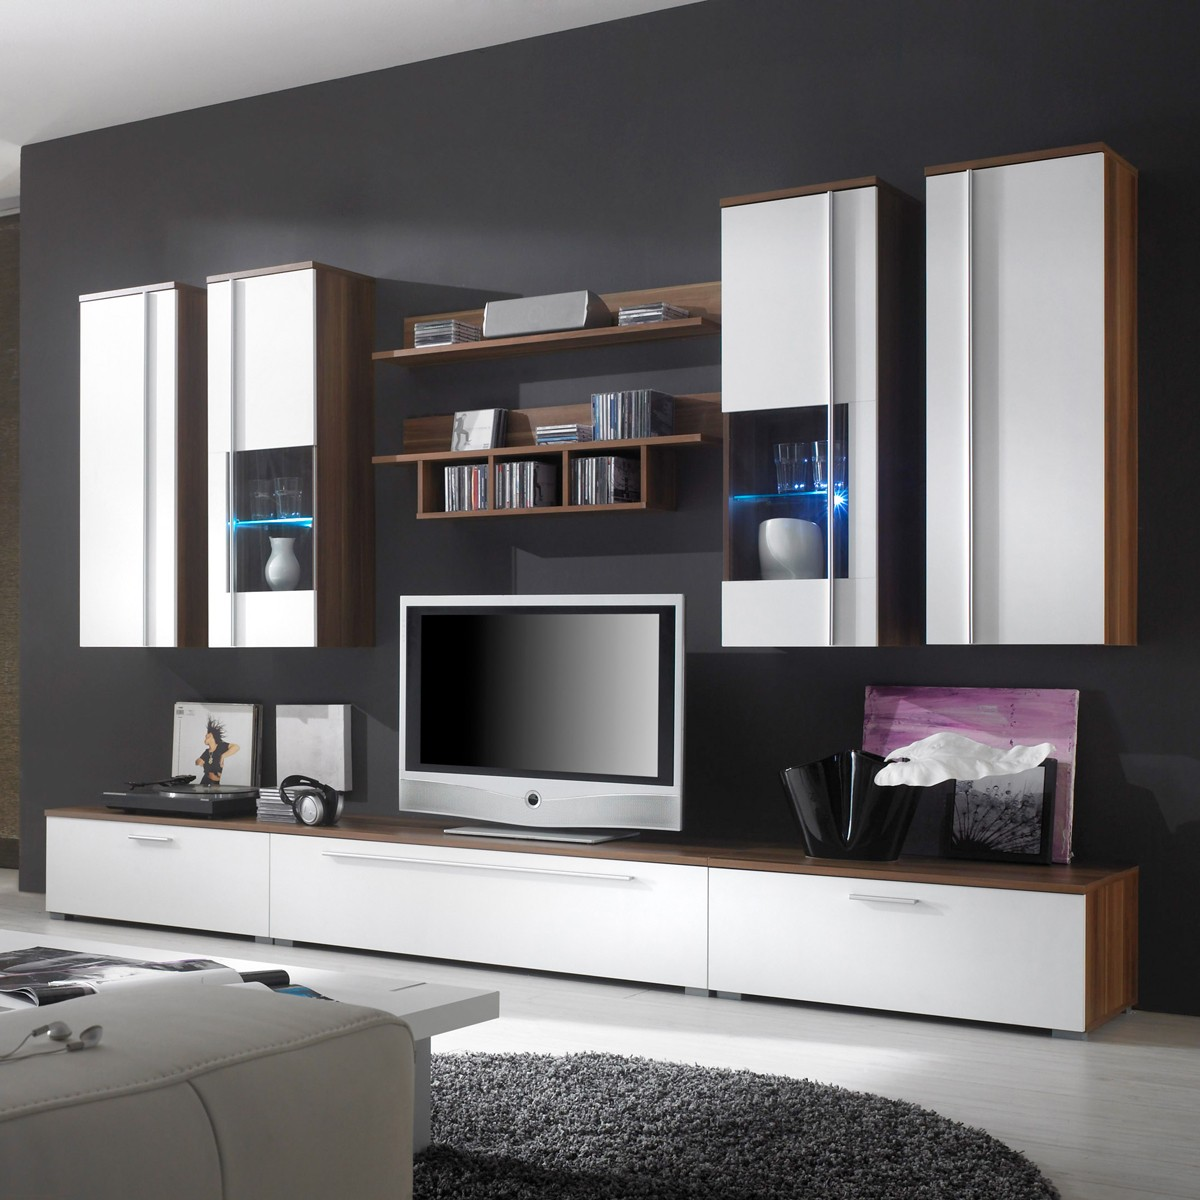 otto schrankwand nussbaum interessante. Black Bedroom Furniture Sets. Home Design Ideas